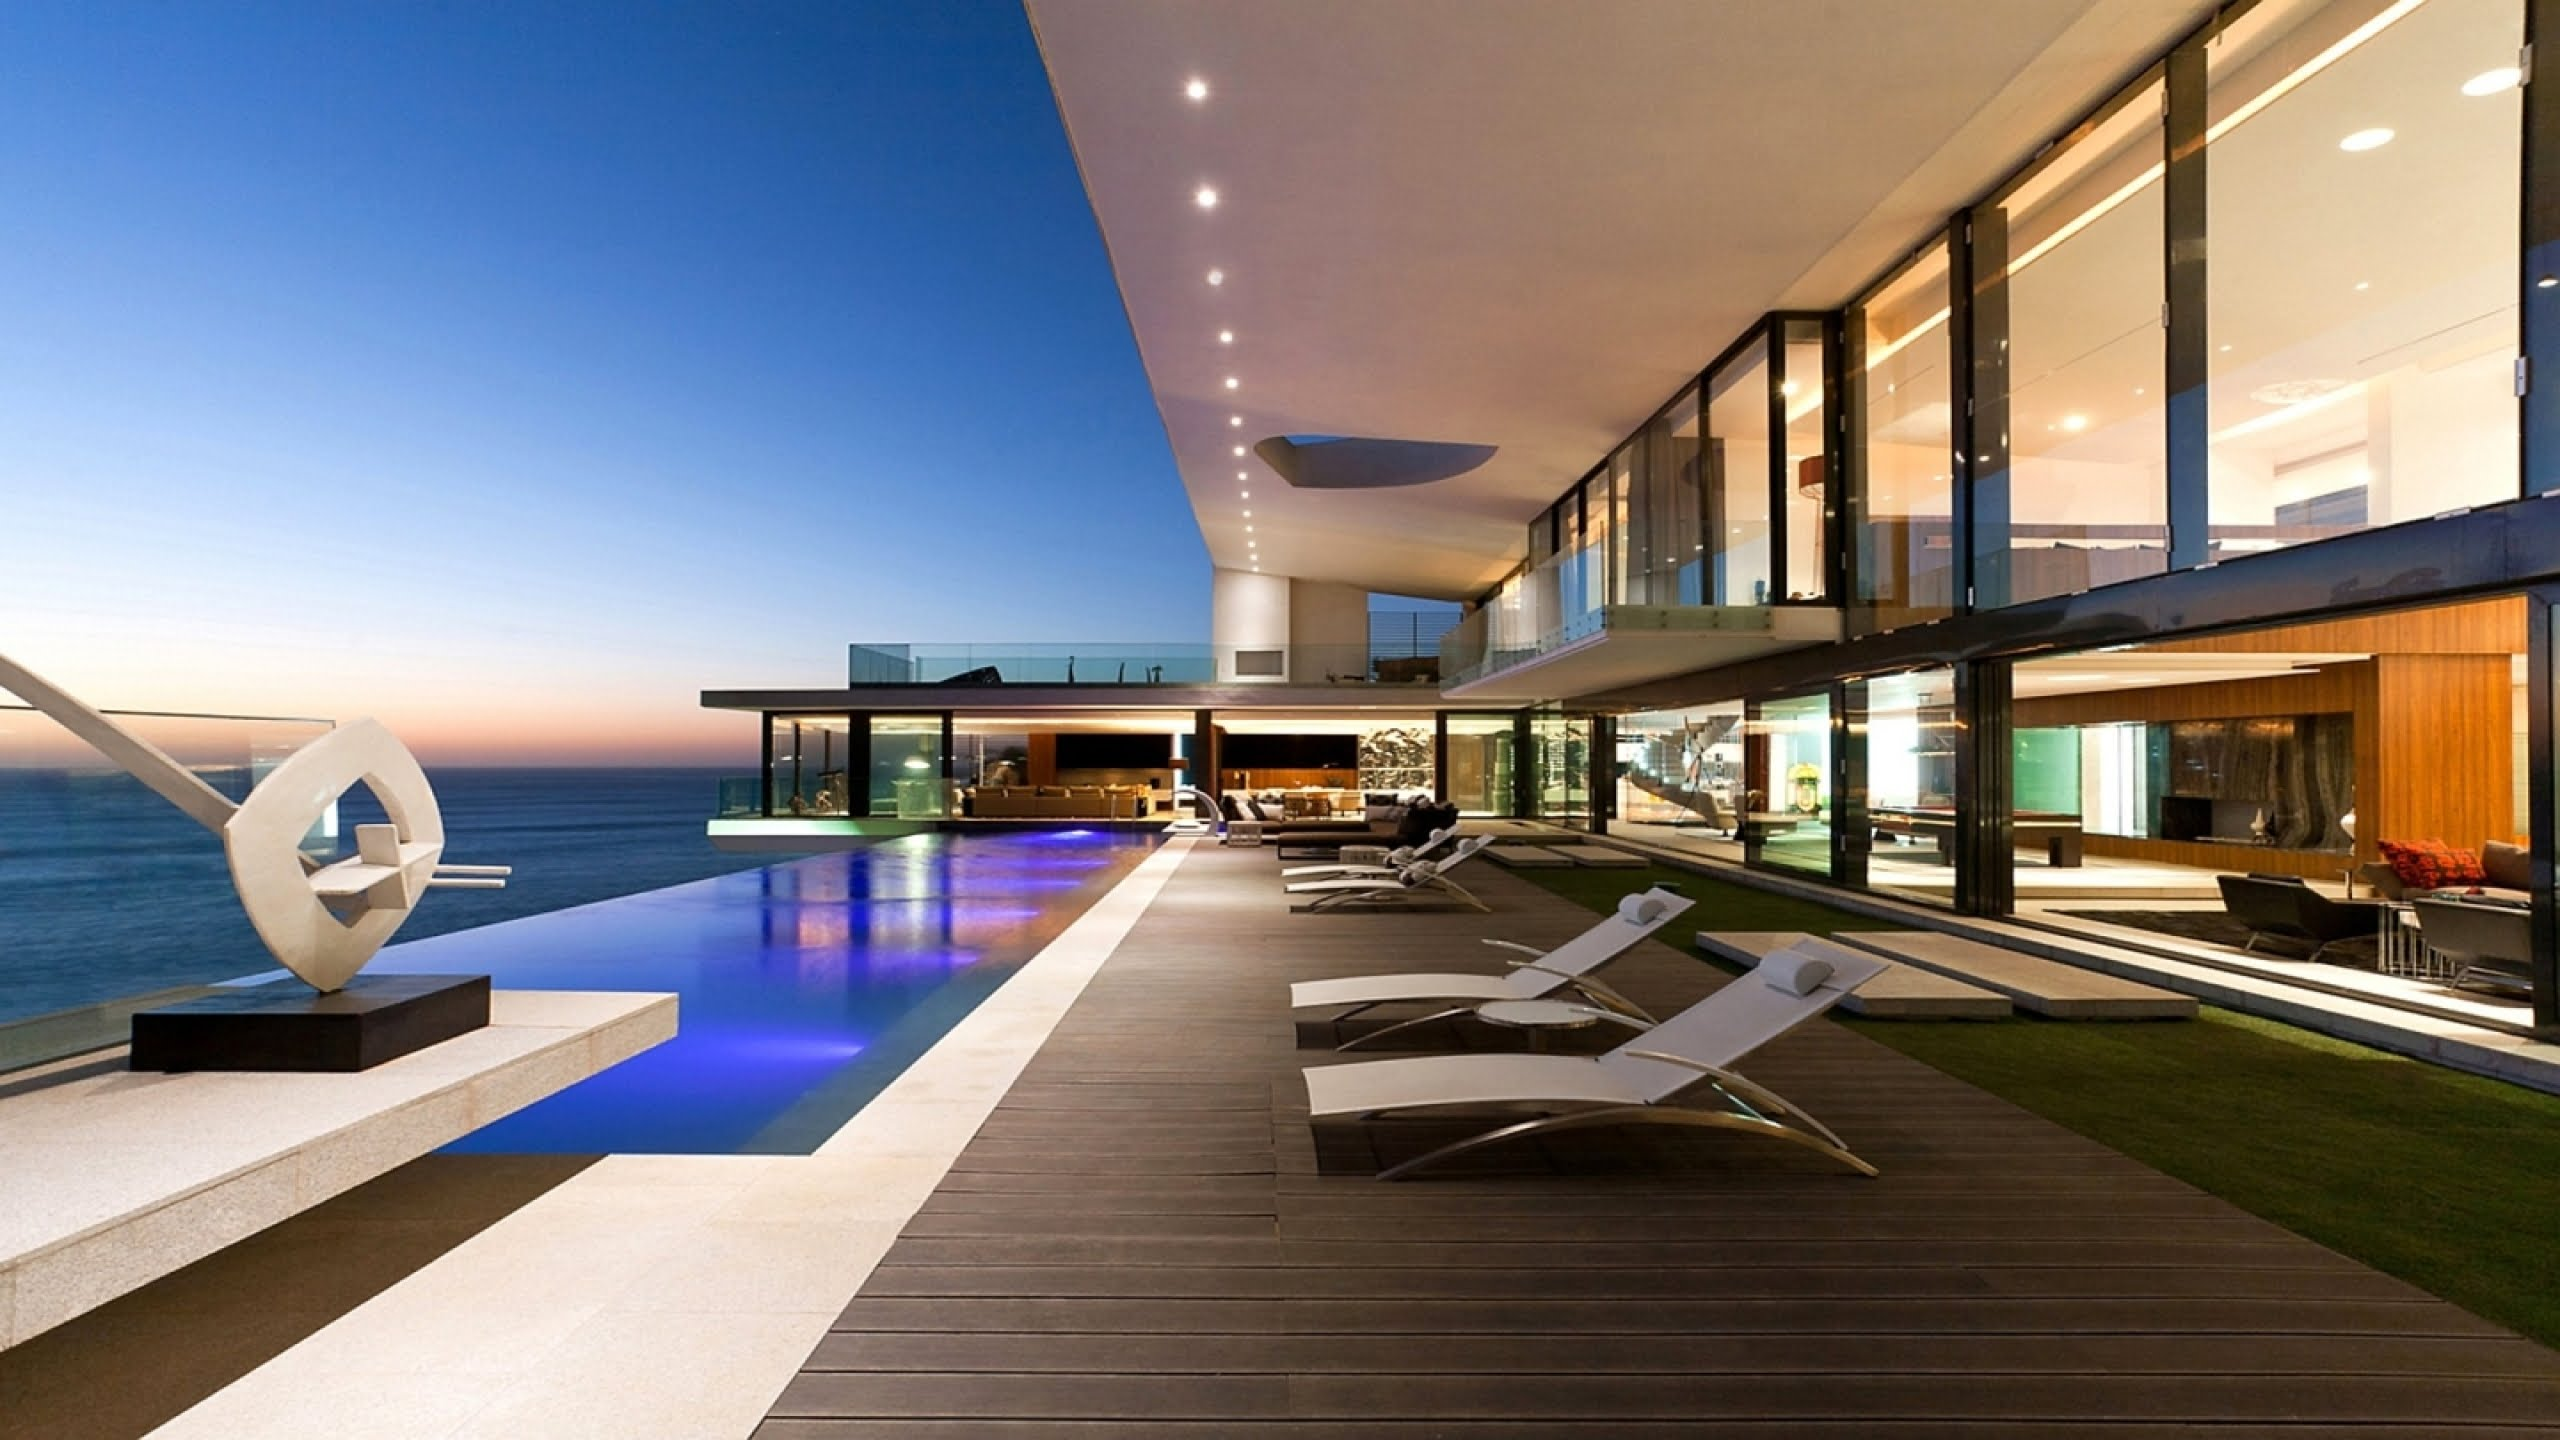 Luxury house wallpapers full hd pictures for Luxury home wallpaper